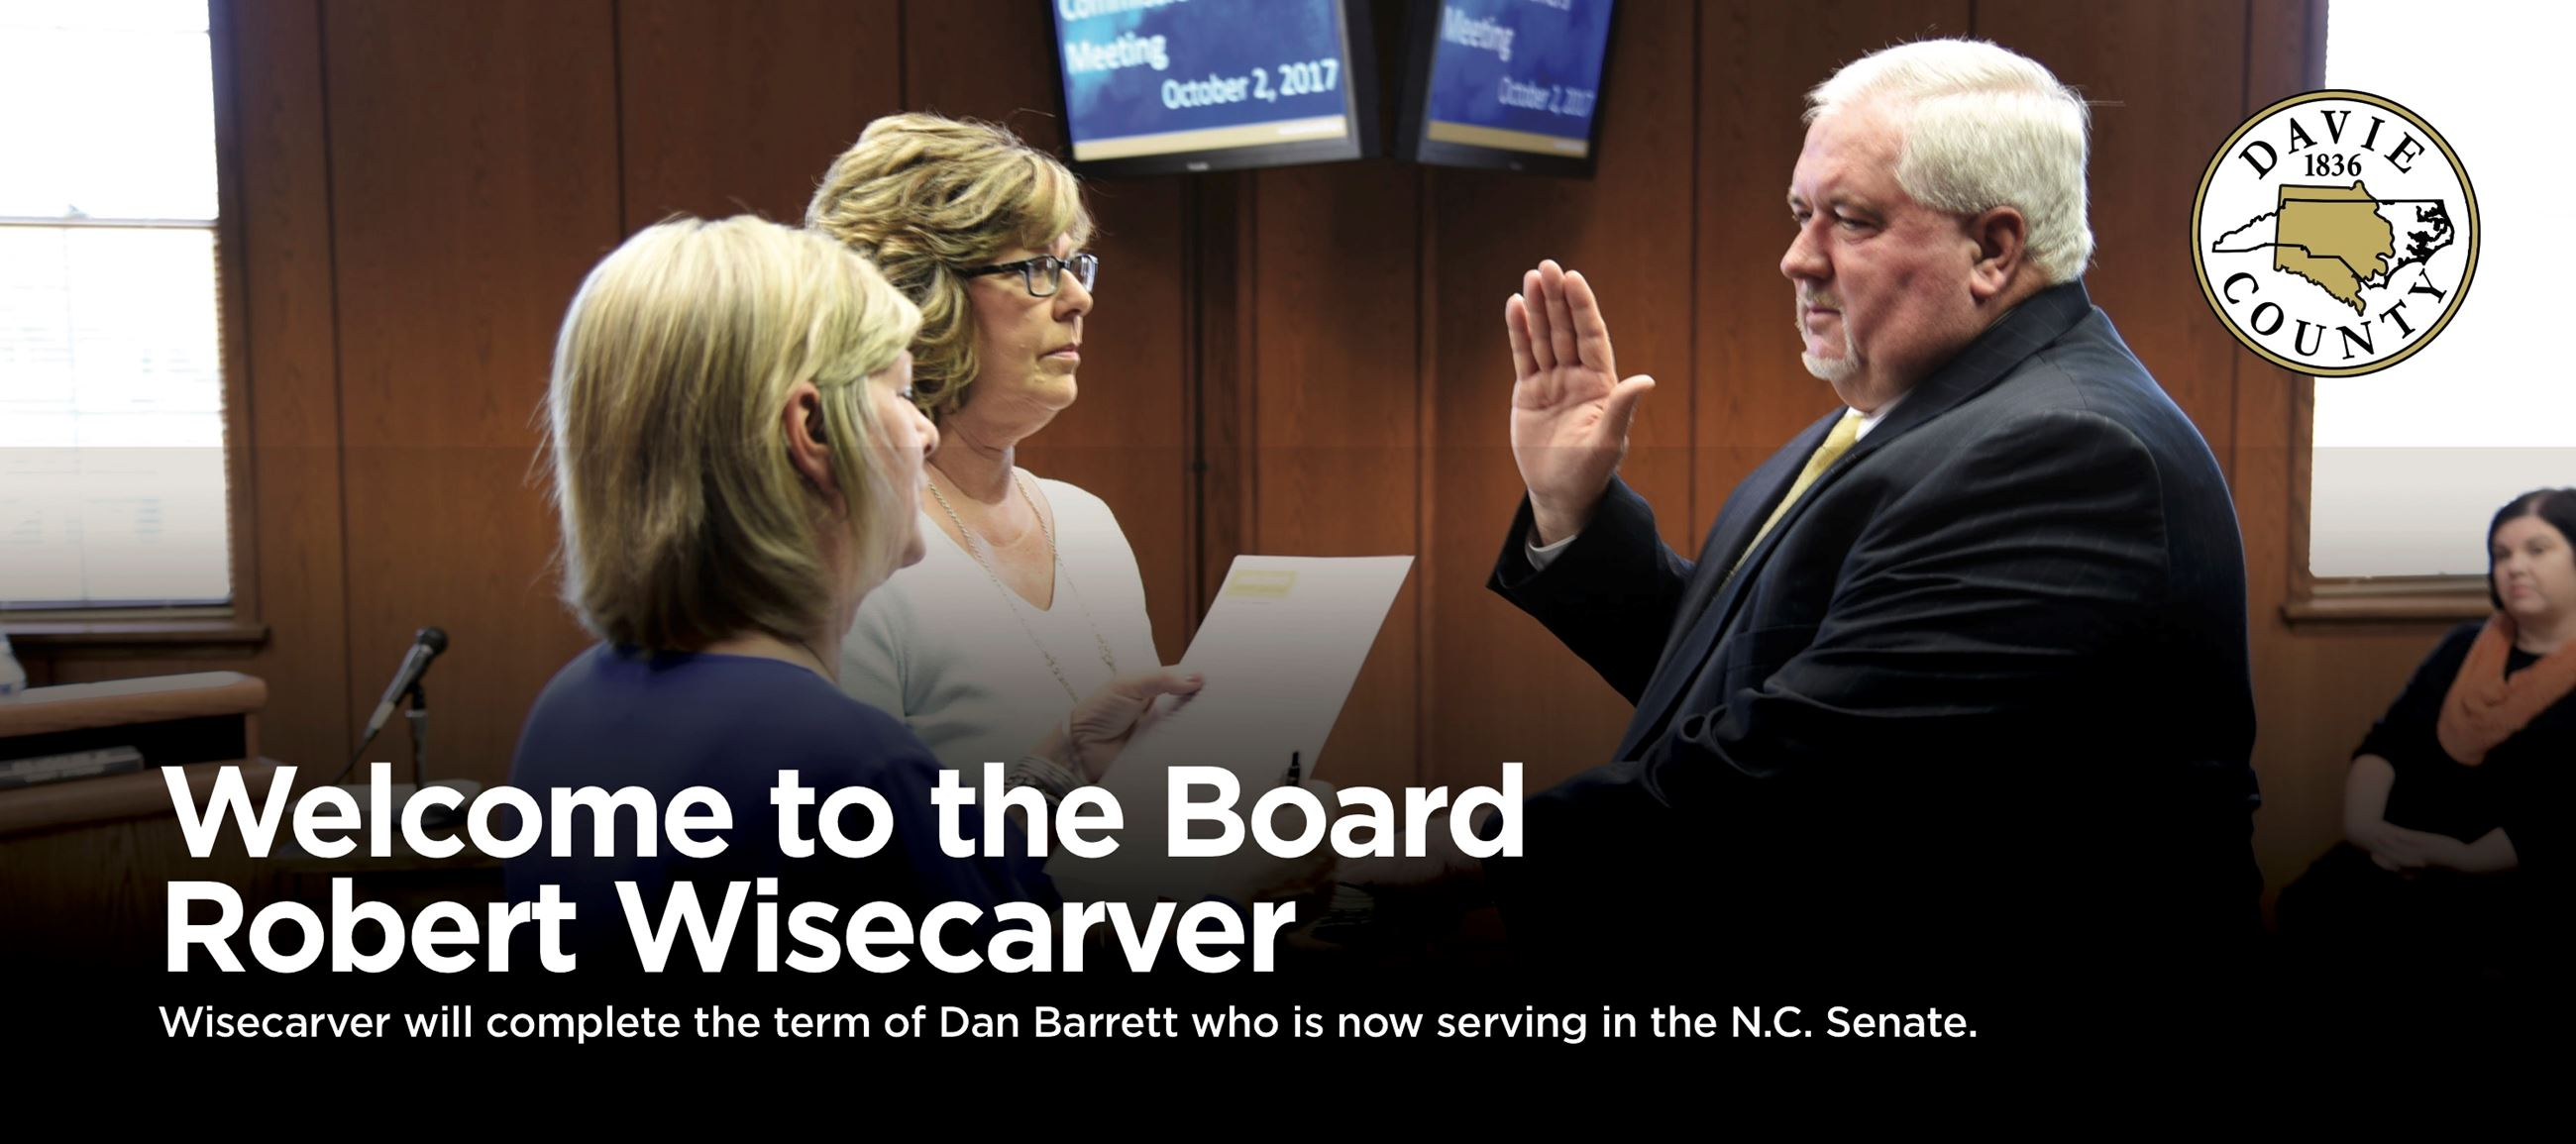 Welcome to the Board Robert Wisecarver